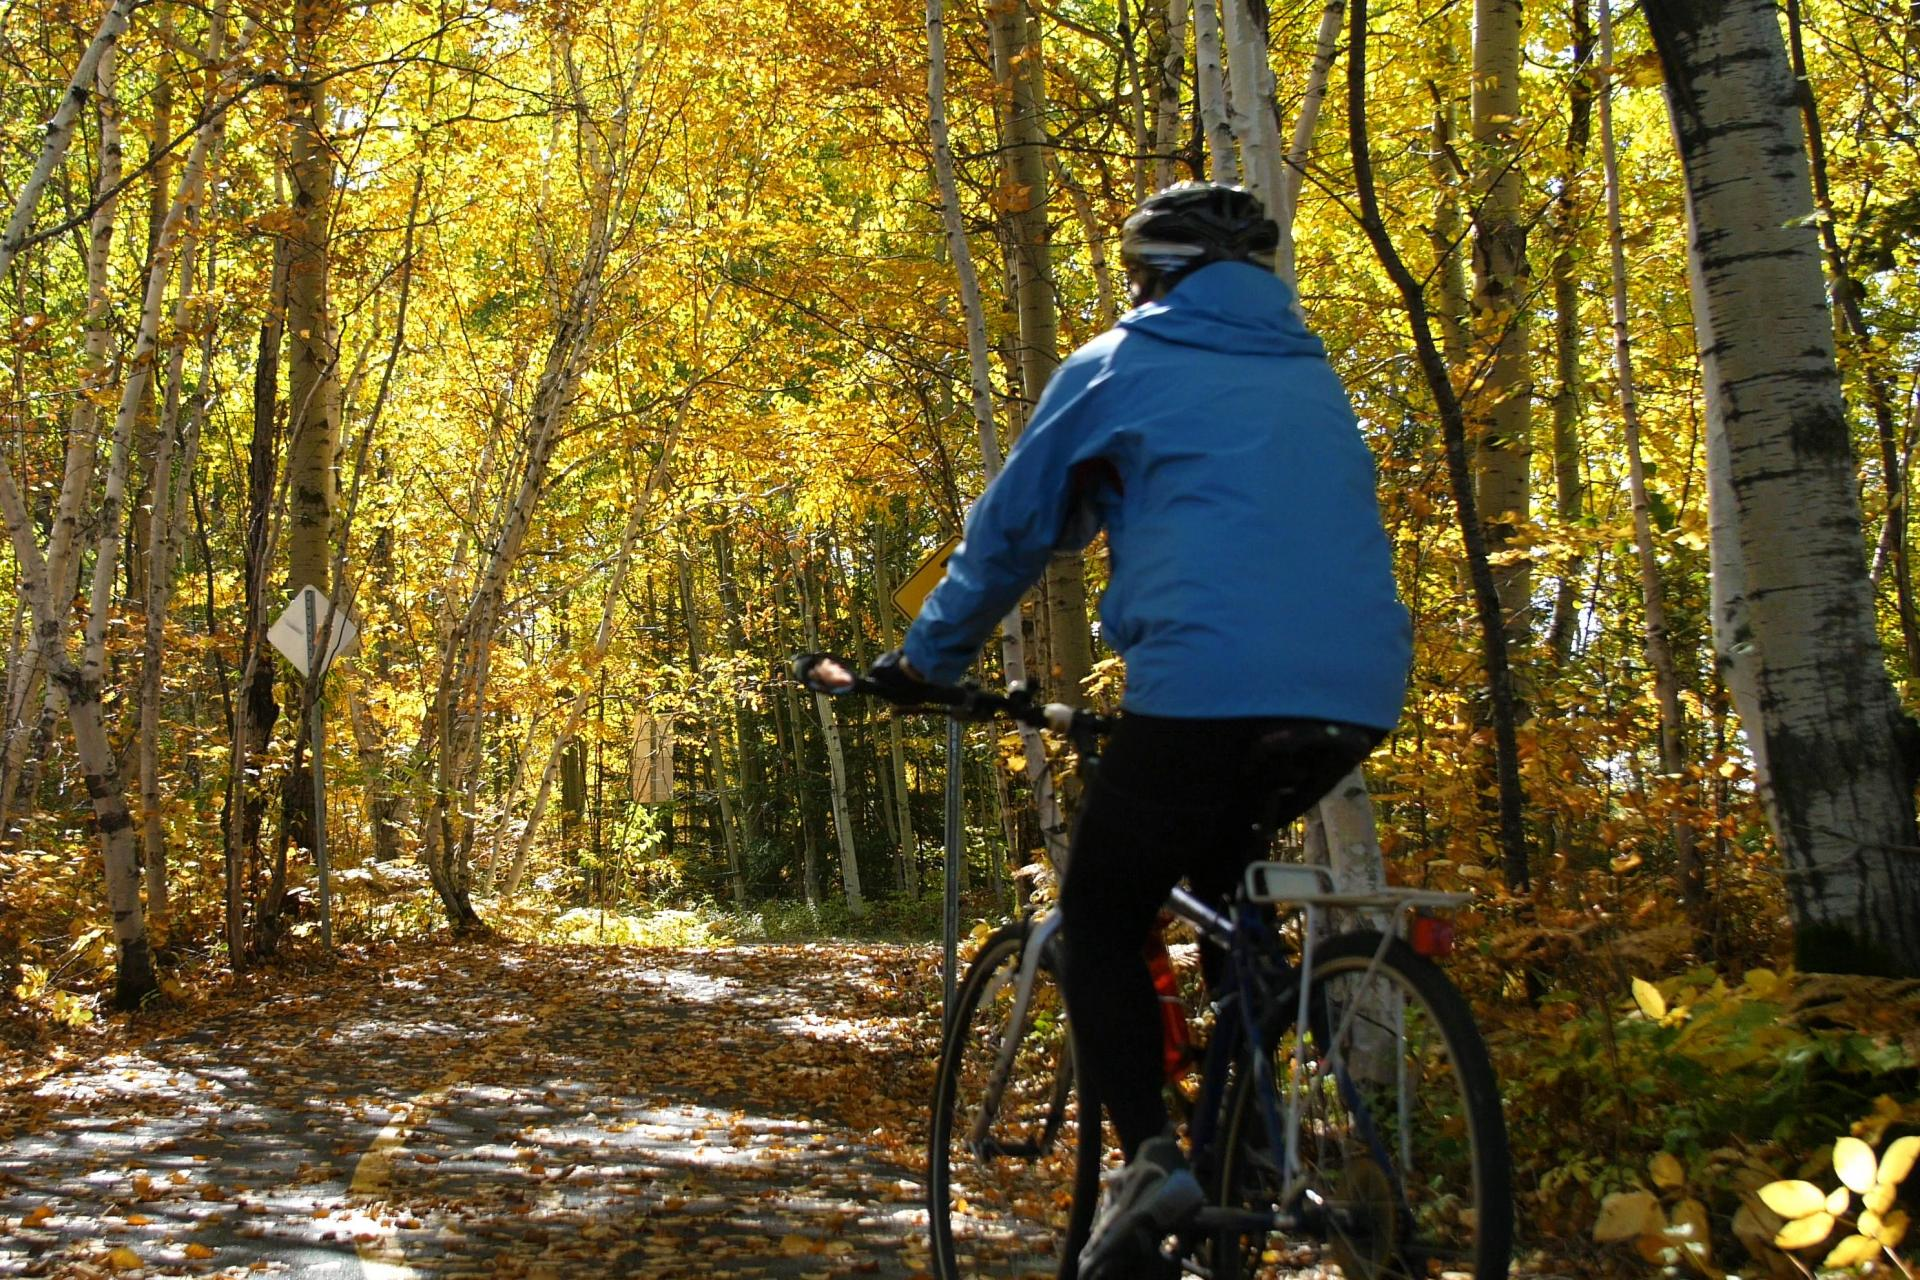 Dreamy fall colors on this bike tour through Quebec's blueberry route